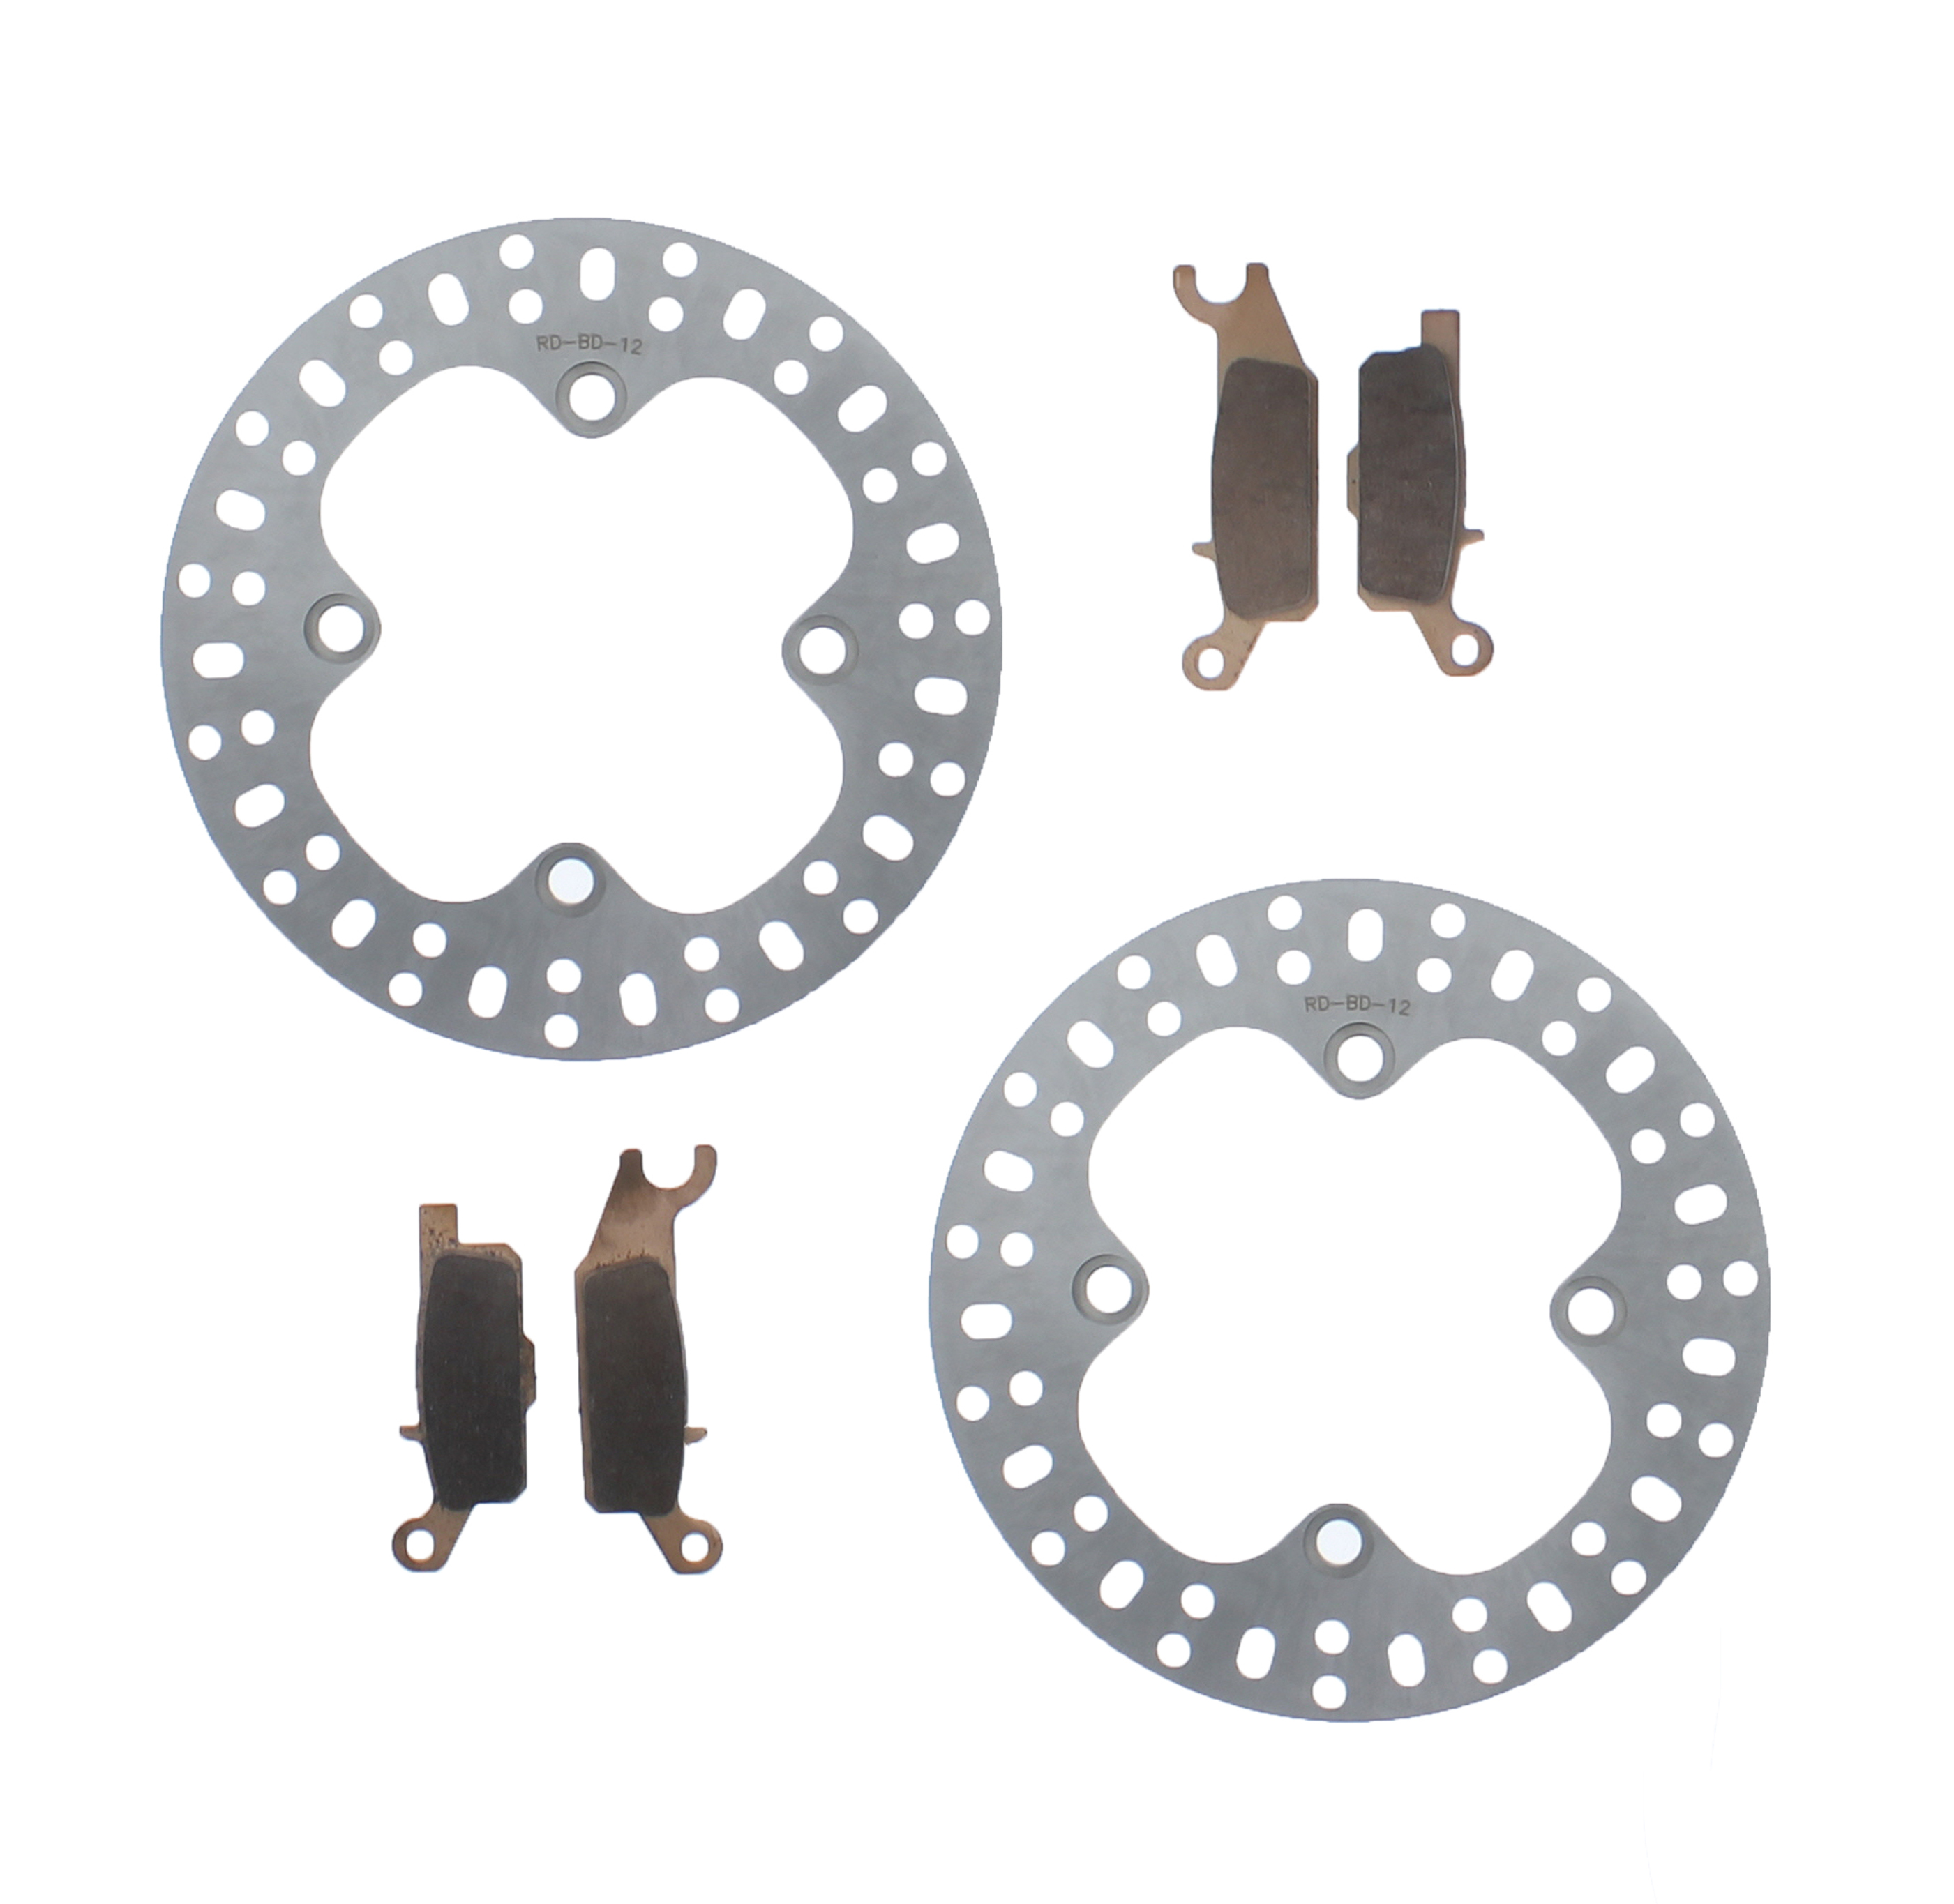 Front /& Rear Brake Pads for Yamaha Grizzly 550 YFM550 Fi Eps Hunting 2009-2014